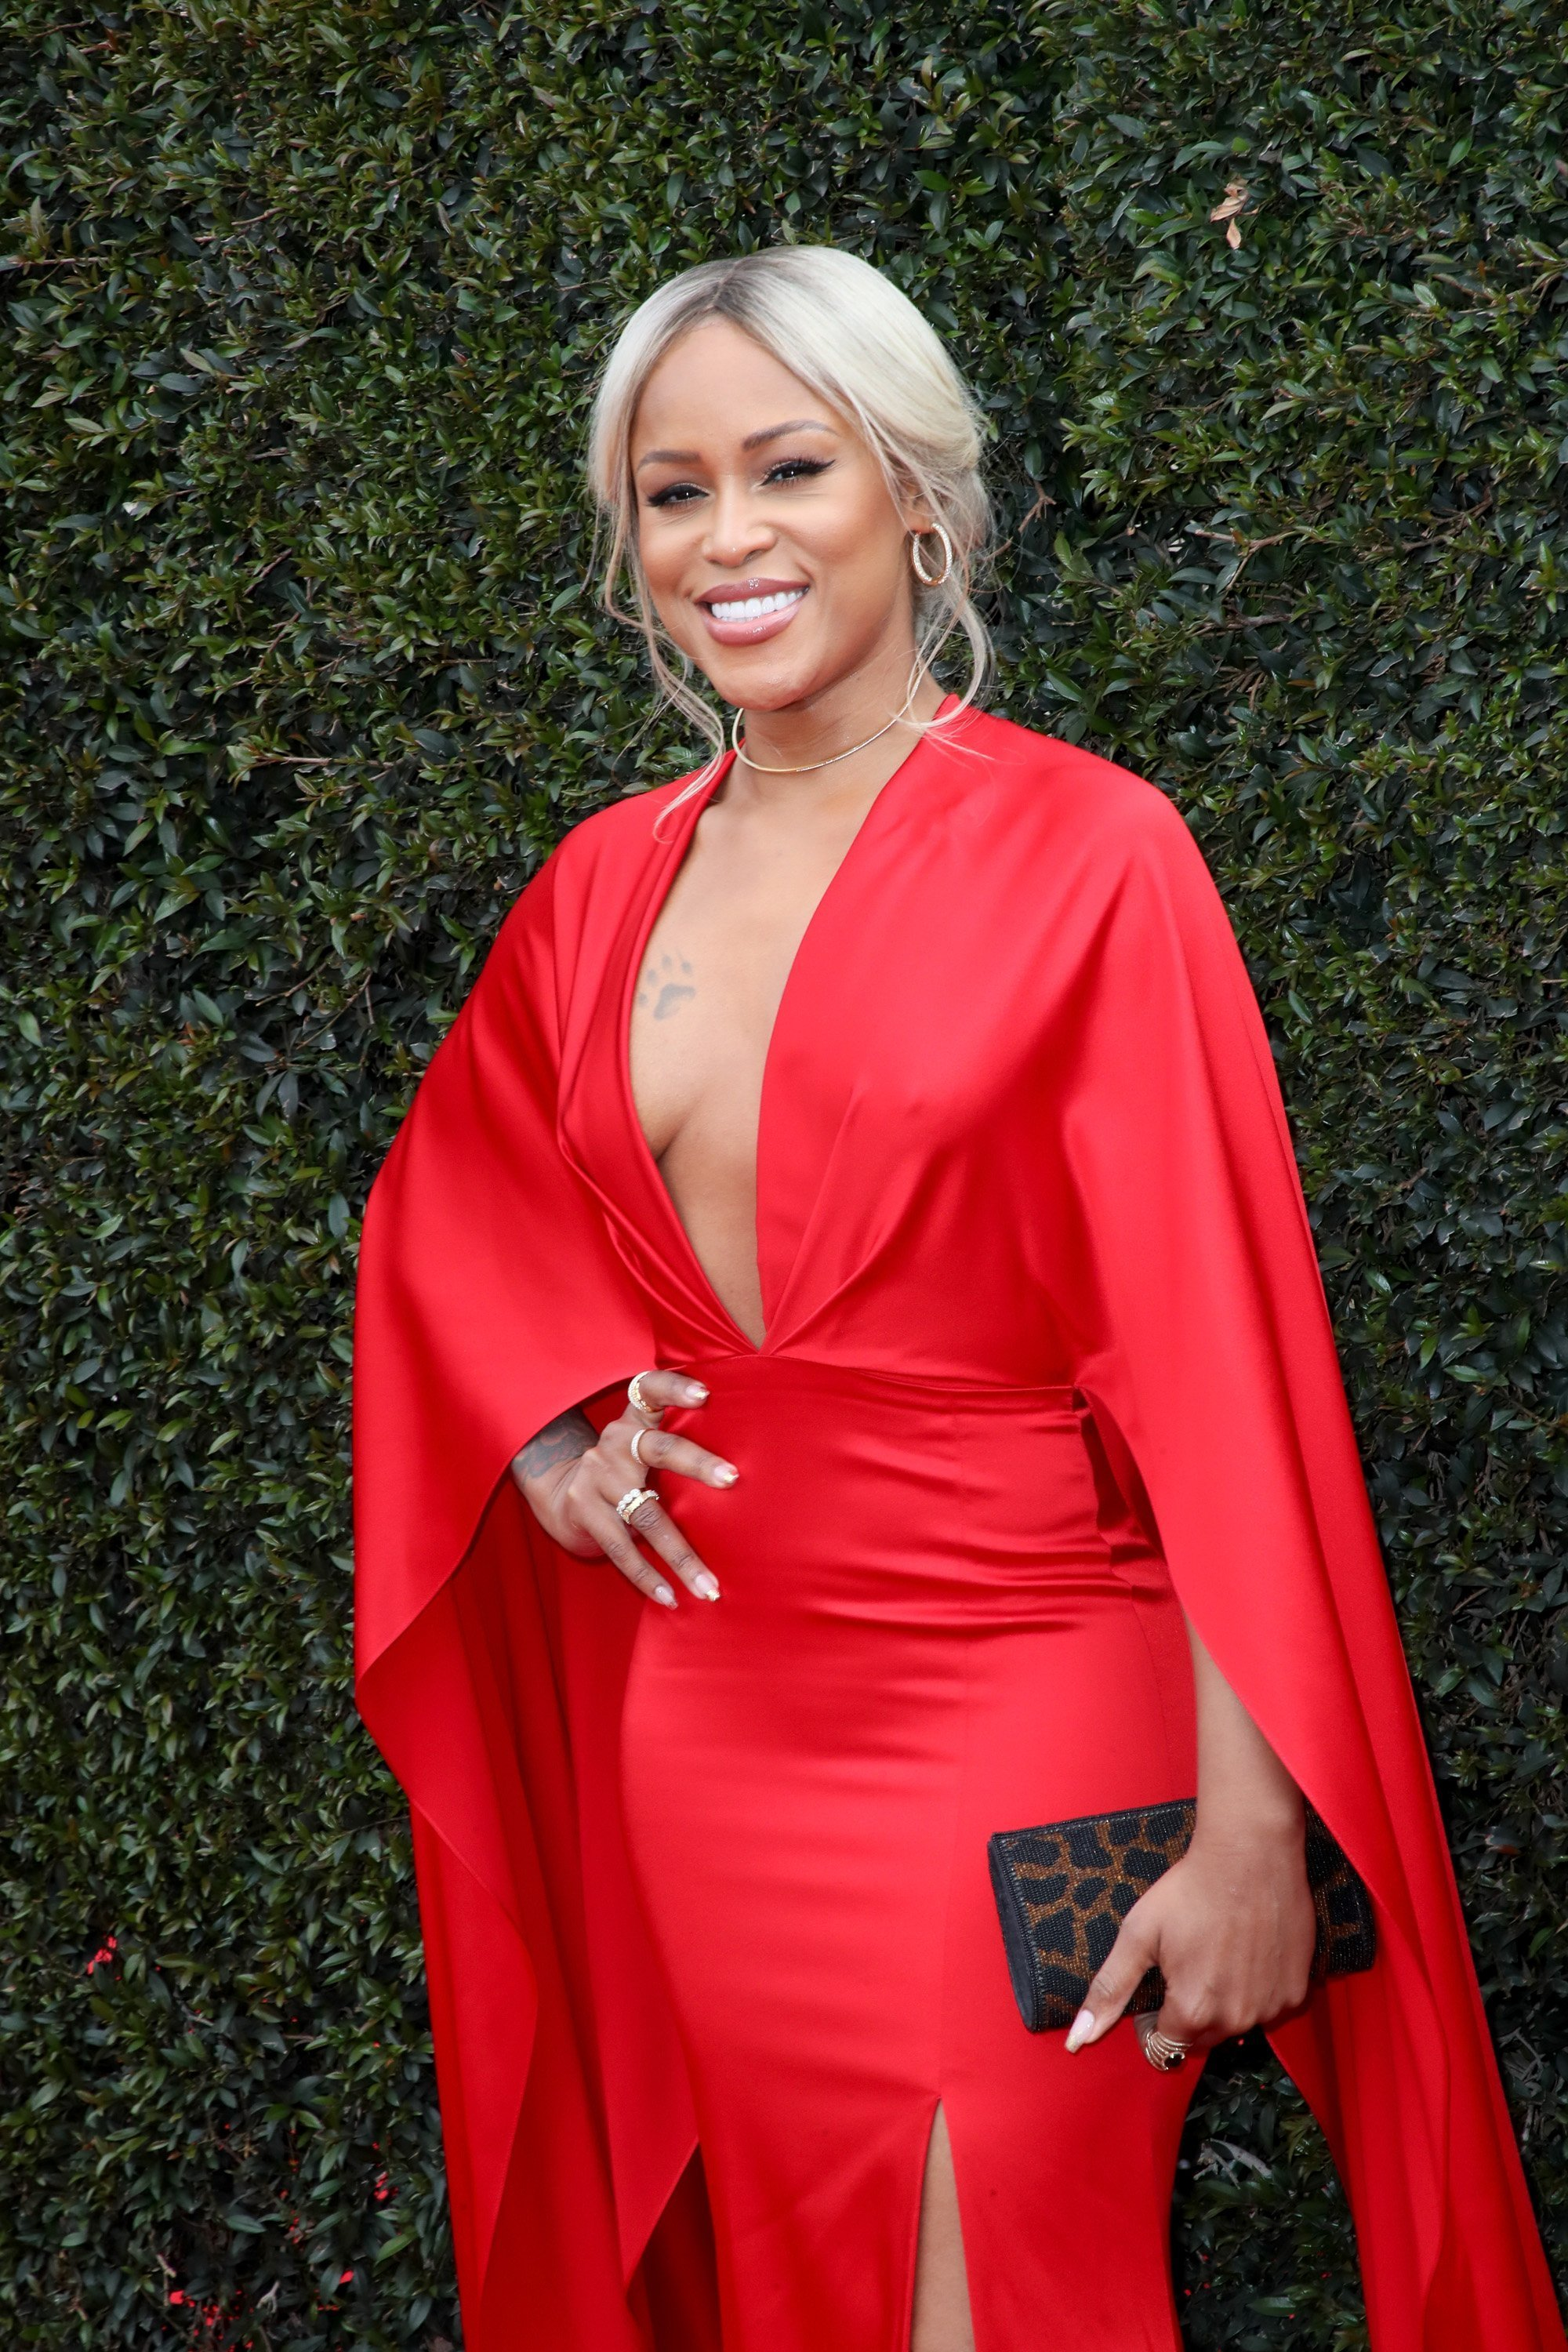 Eve at the 45th annual Daytime Emmy Awards on April 29, 2018 in California | Photo: Getty Images